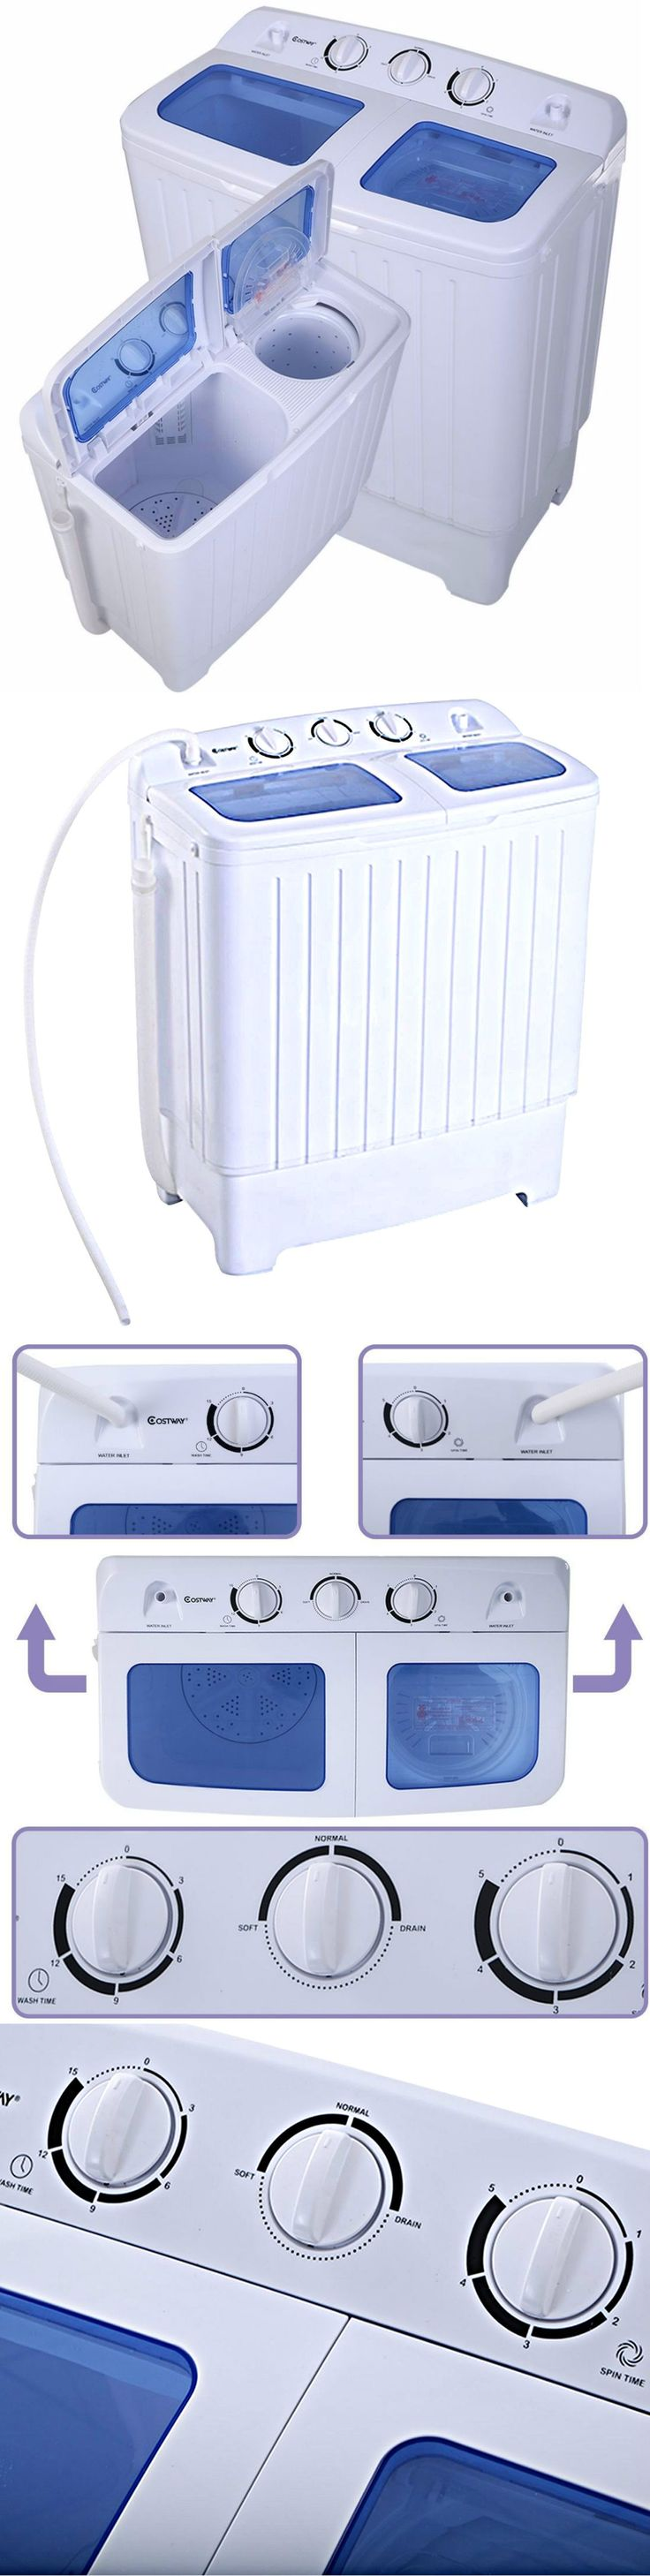 Washing Machines 71256: Washer And Dryer Combo Portable Washing Machine 11Lbs Stackable Cheap All In One -> BUY IT NOW ONLY: $145 on eBay!